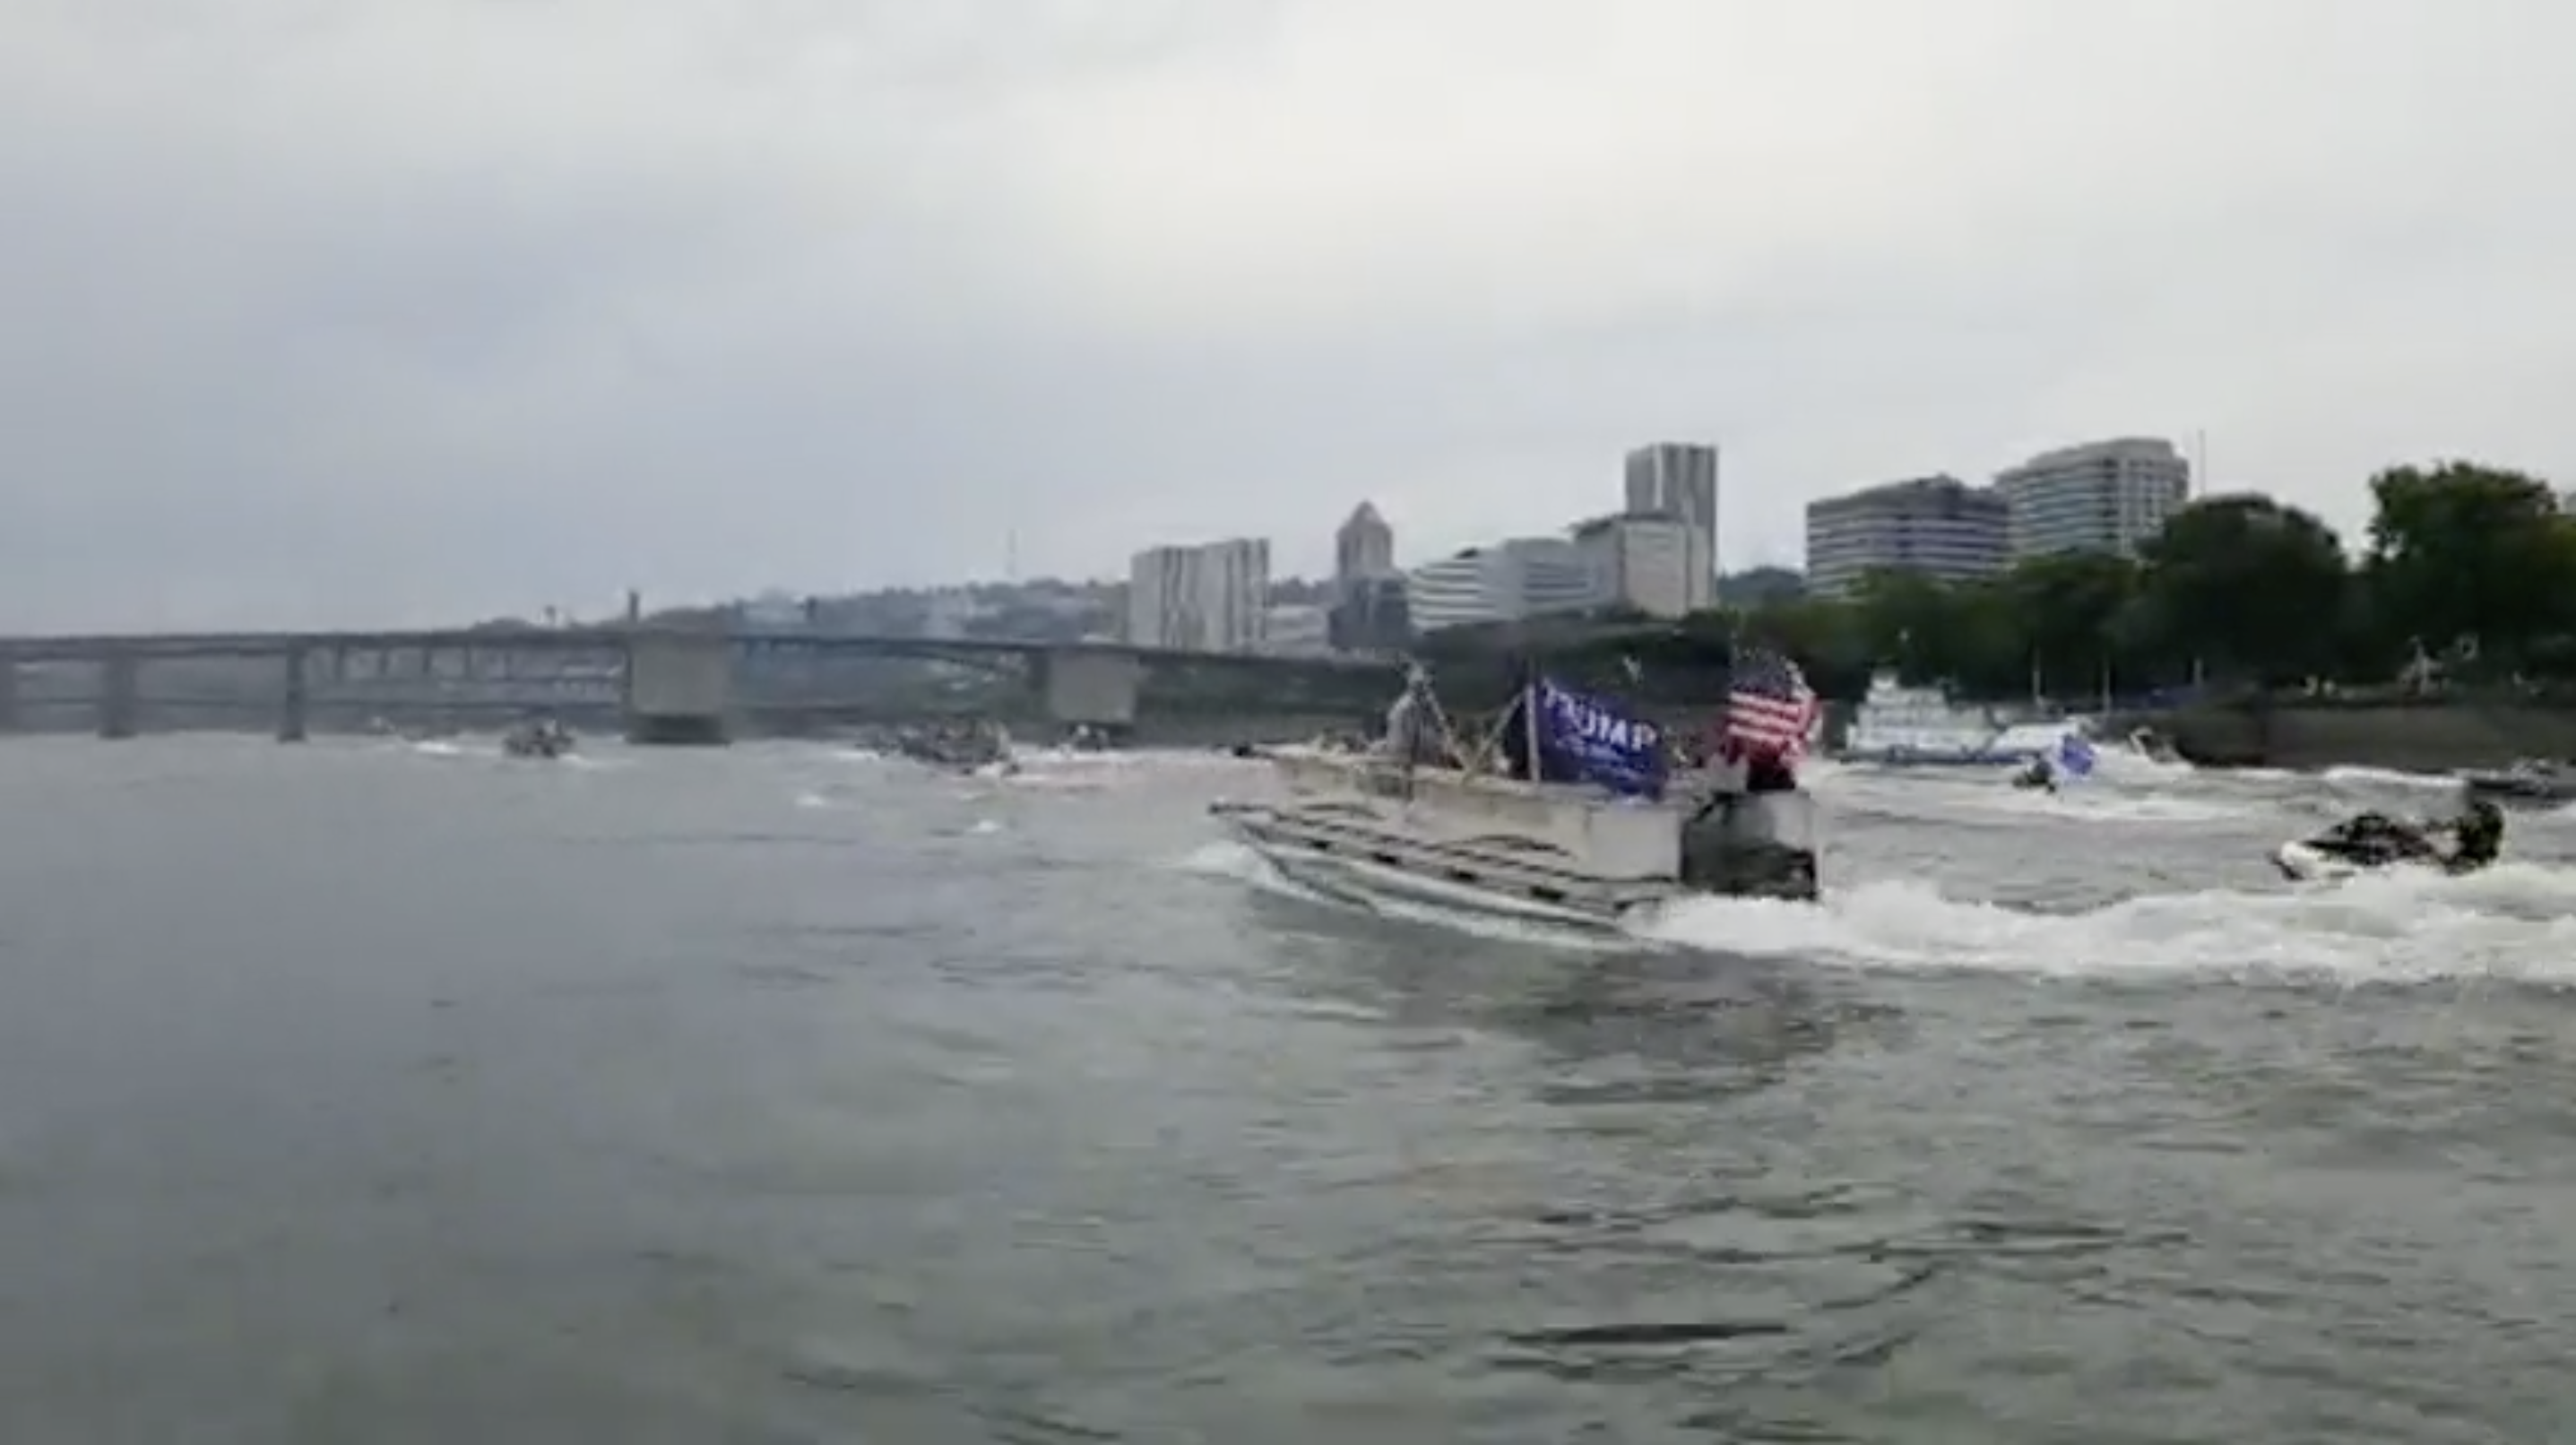 A screenshot of a video shows boats with Trump and American flags creating a wake on the Willamette River